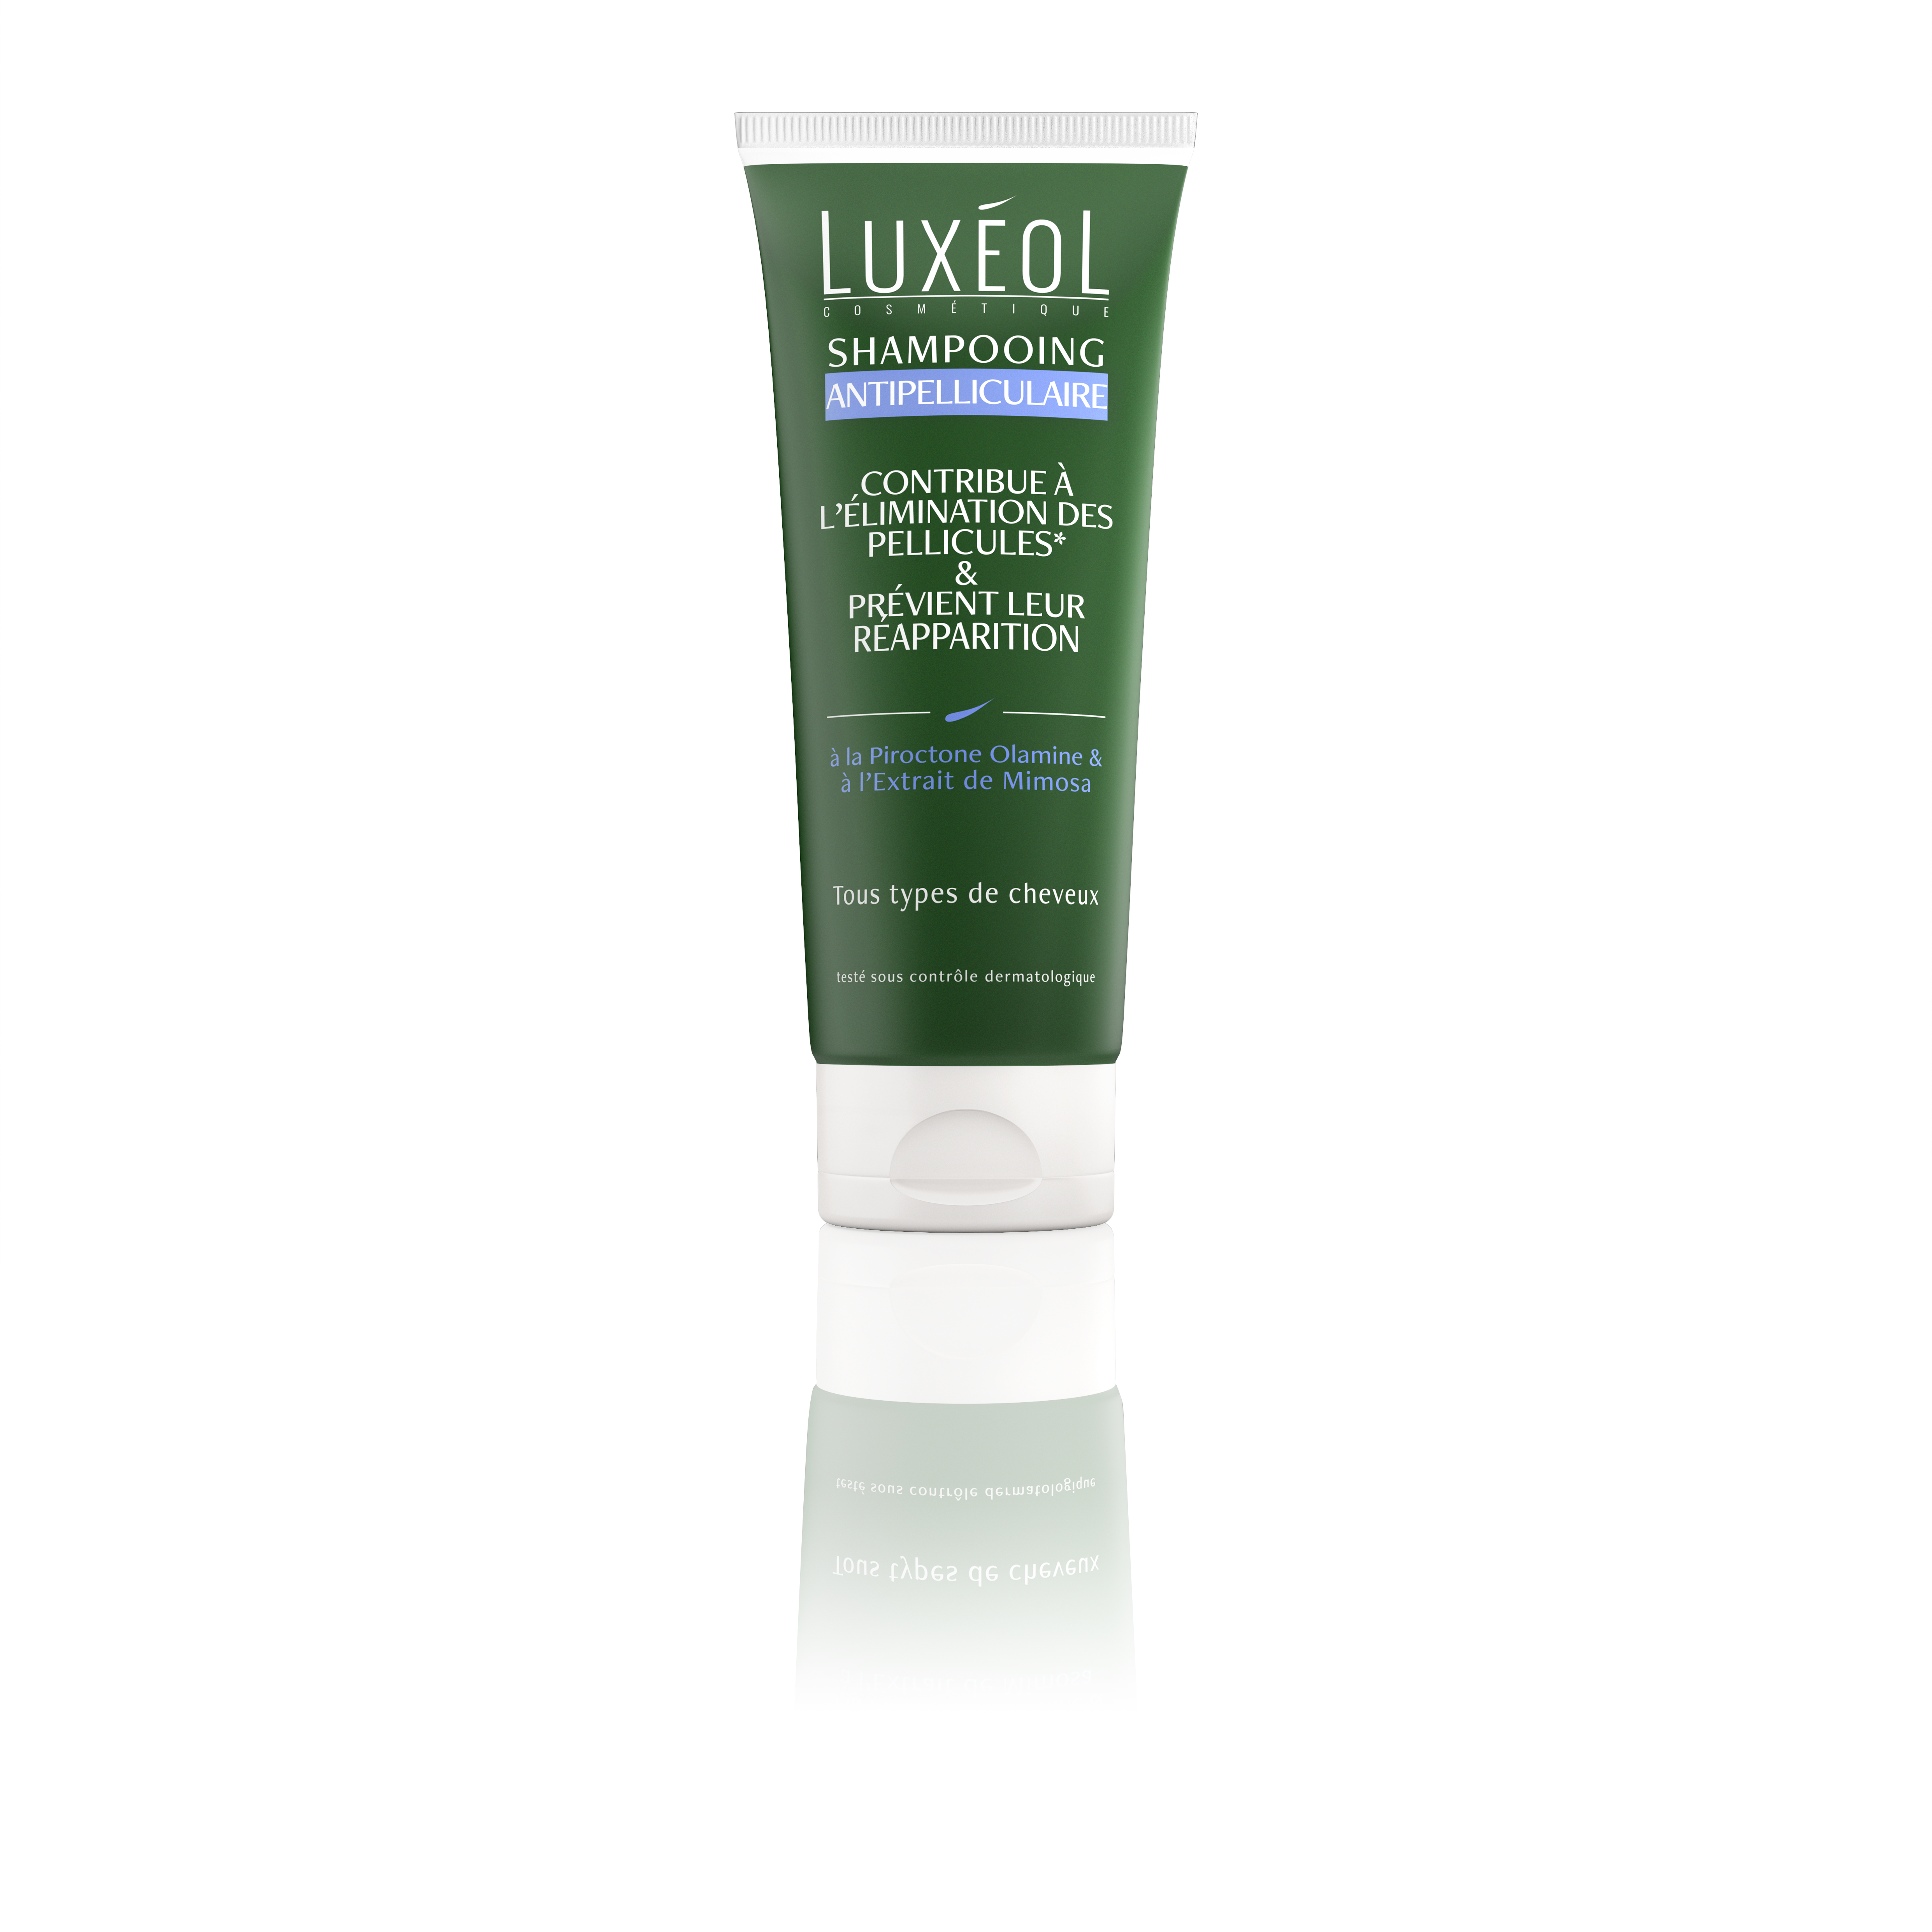 Luxeol Shampooing Antipelliculaire